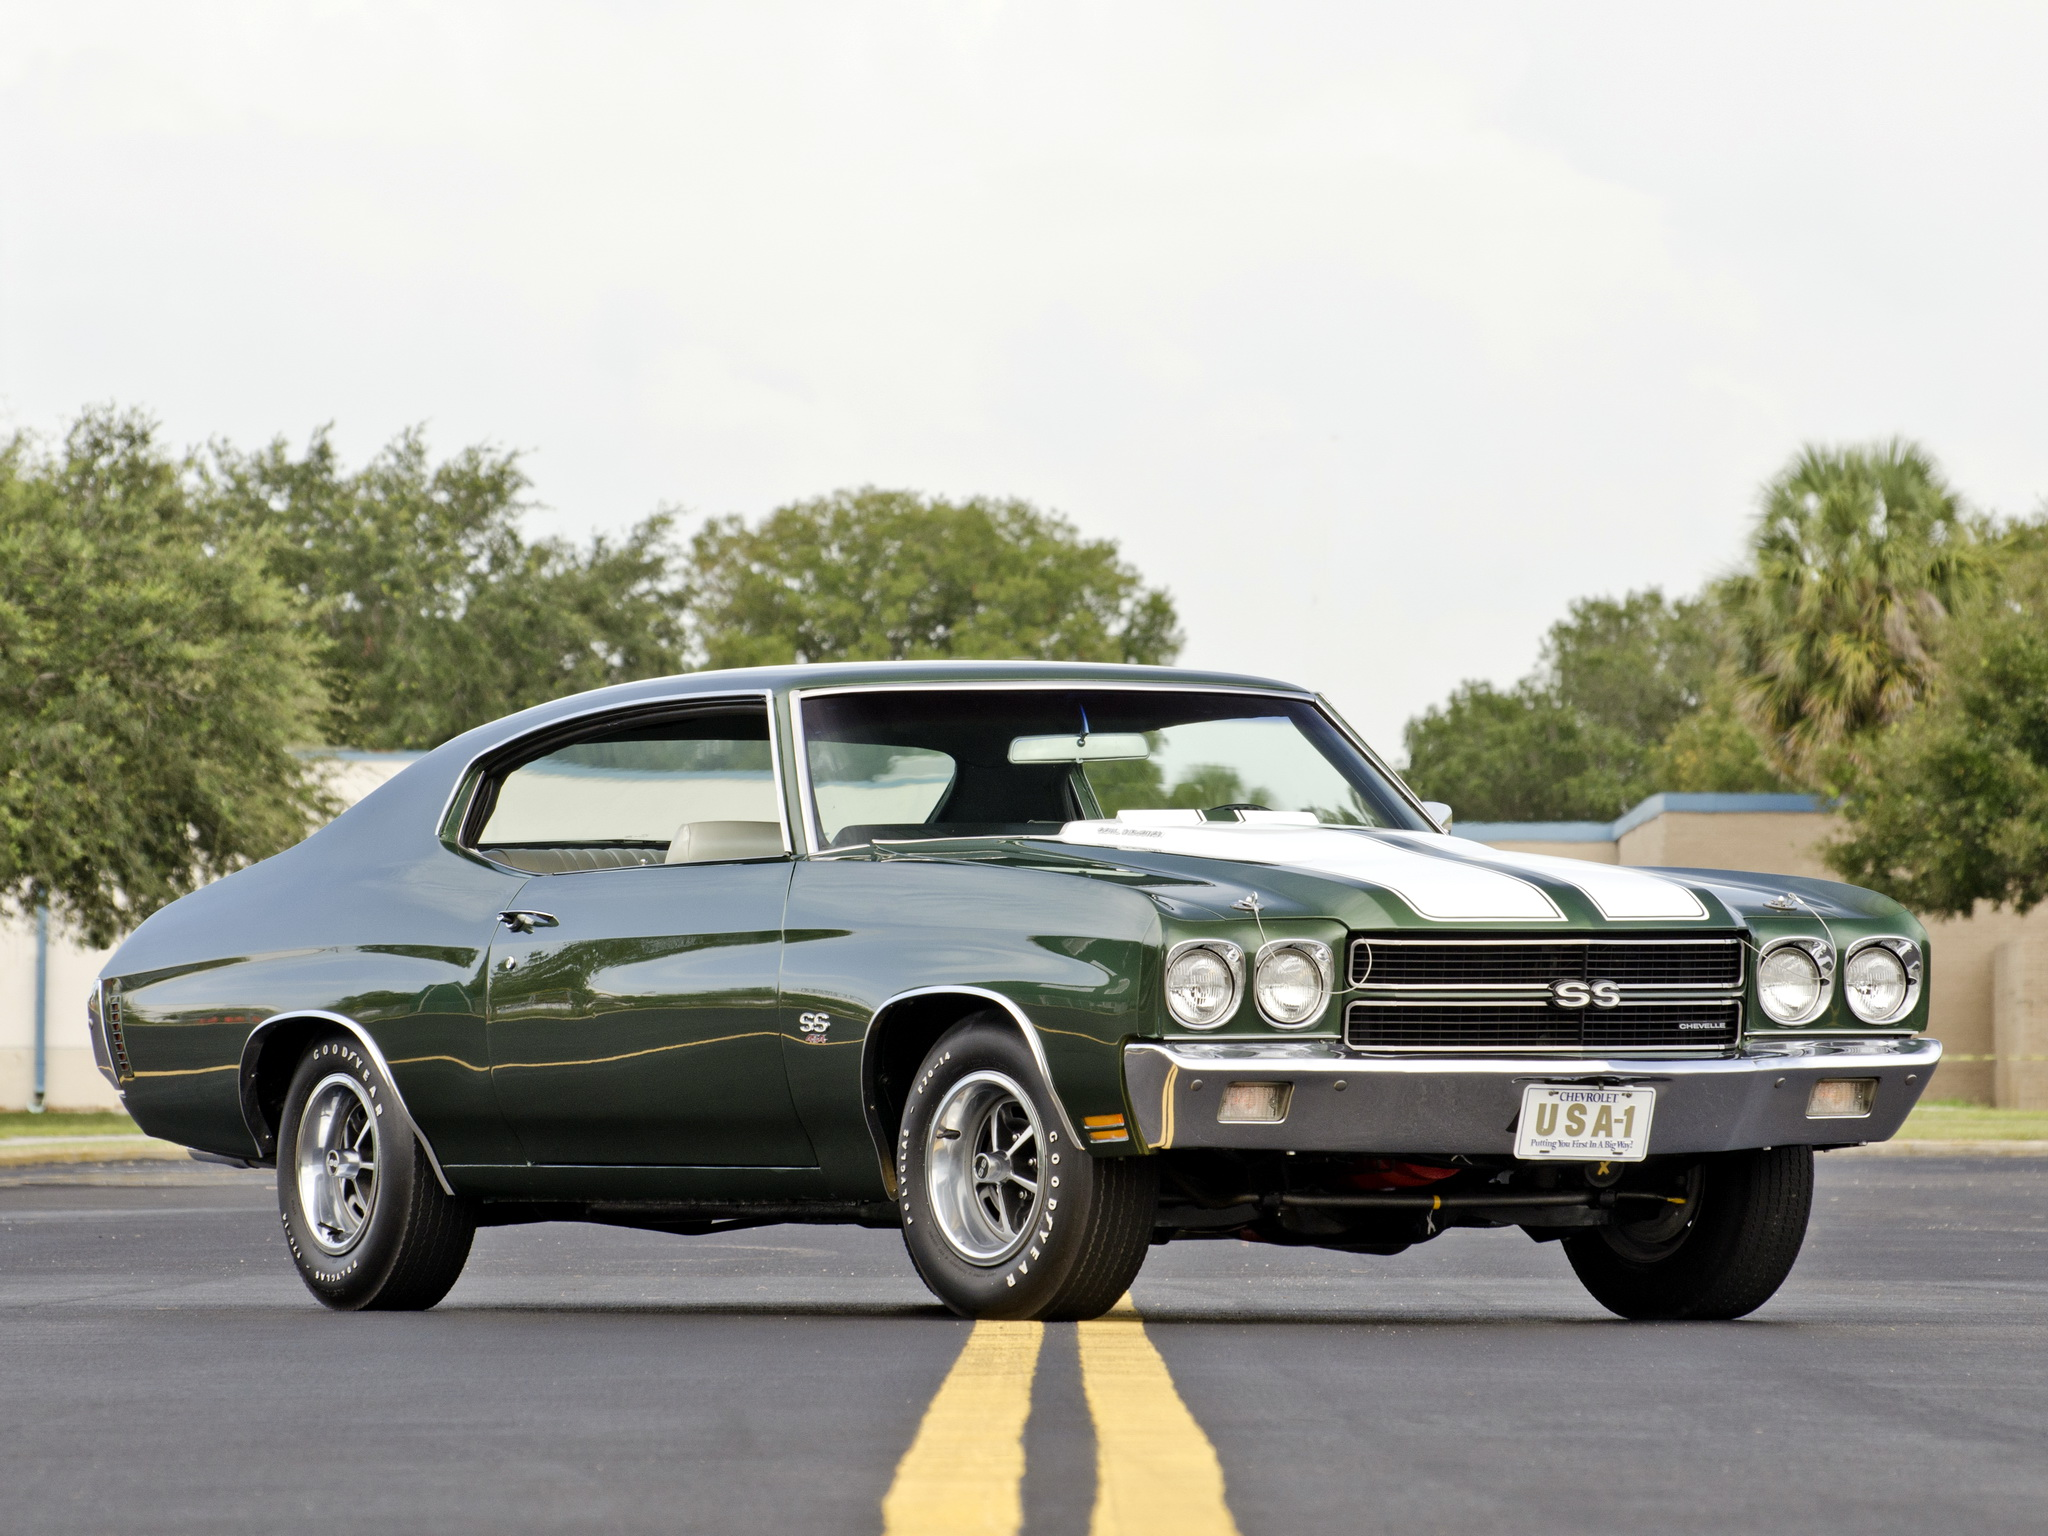 The Muscle Car Thread - Page 6 - Random Samples - The Rush Forum